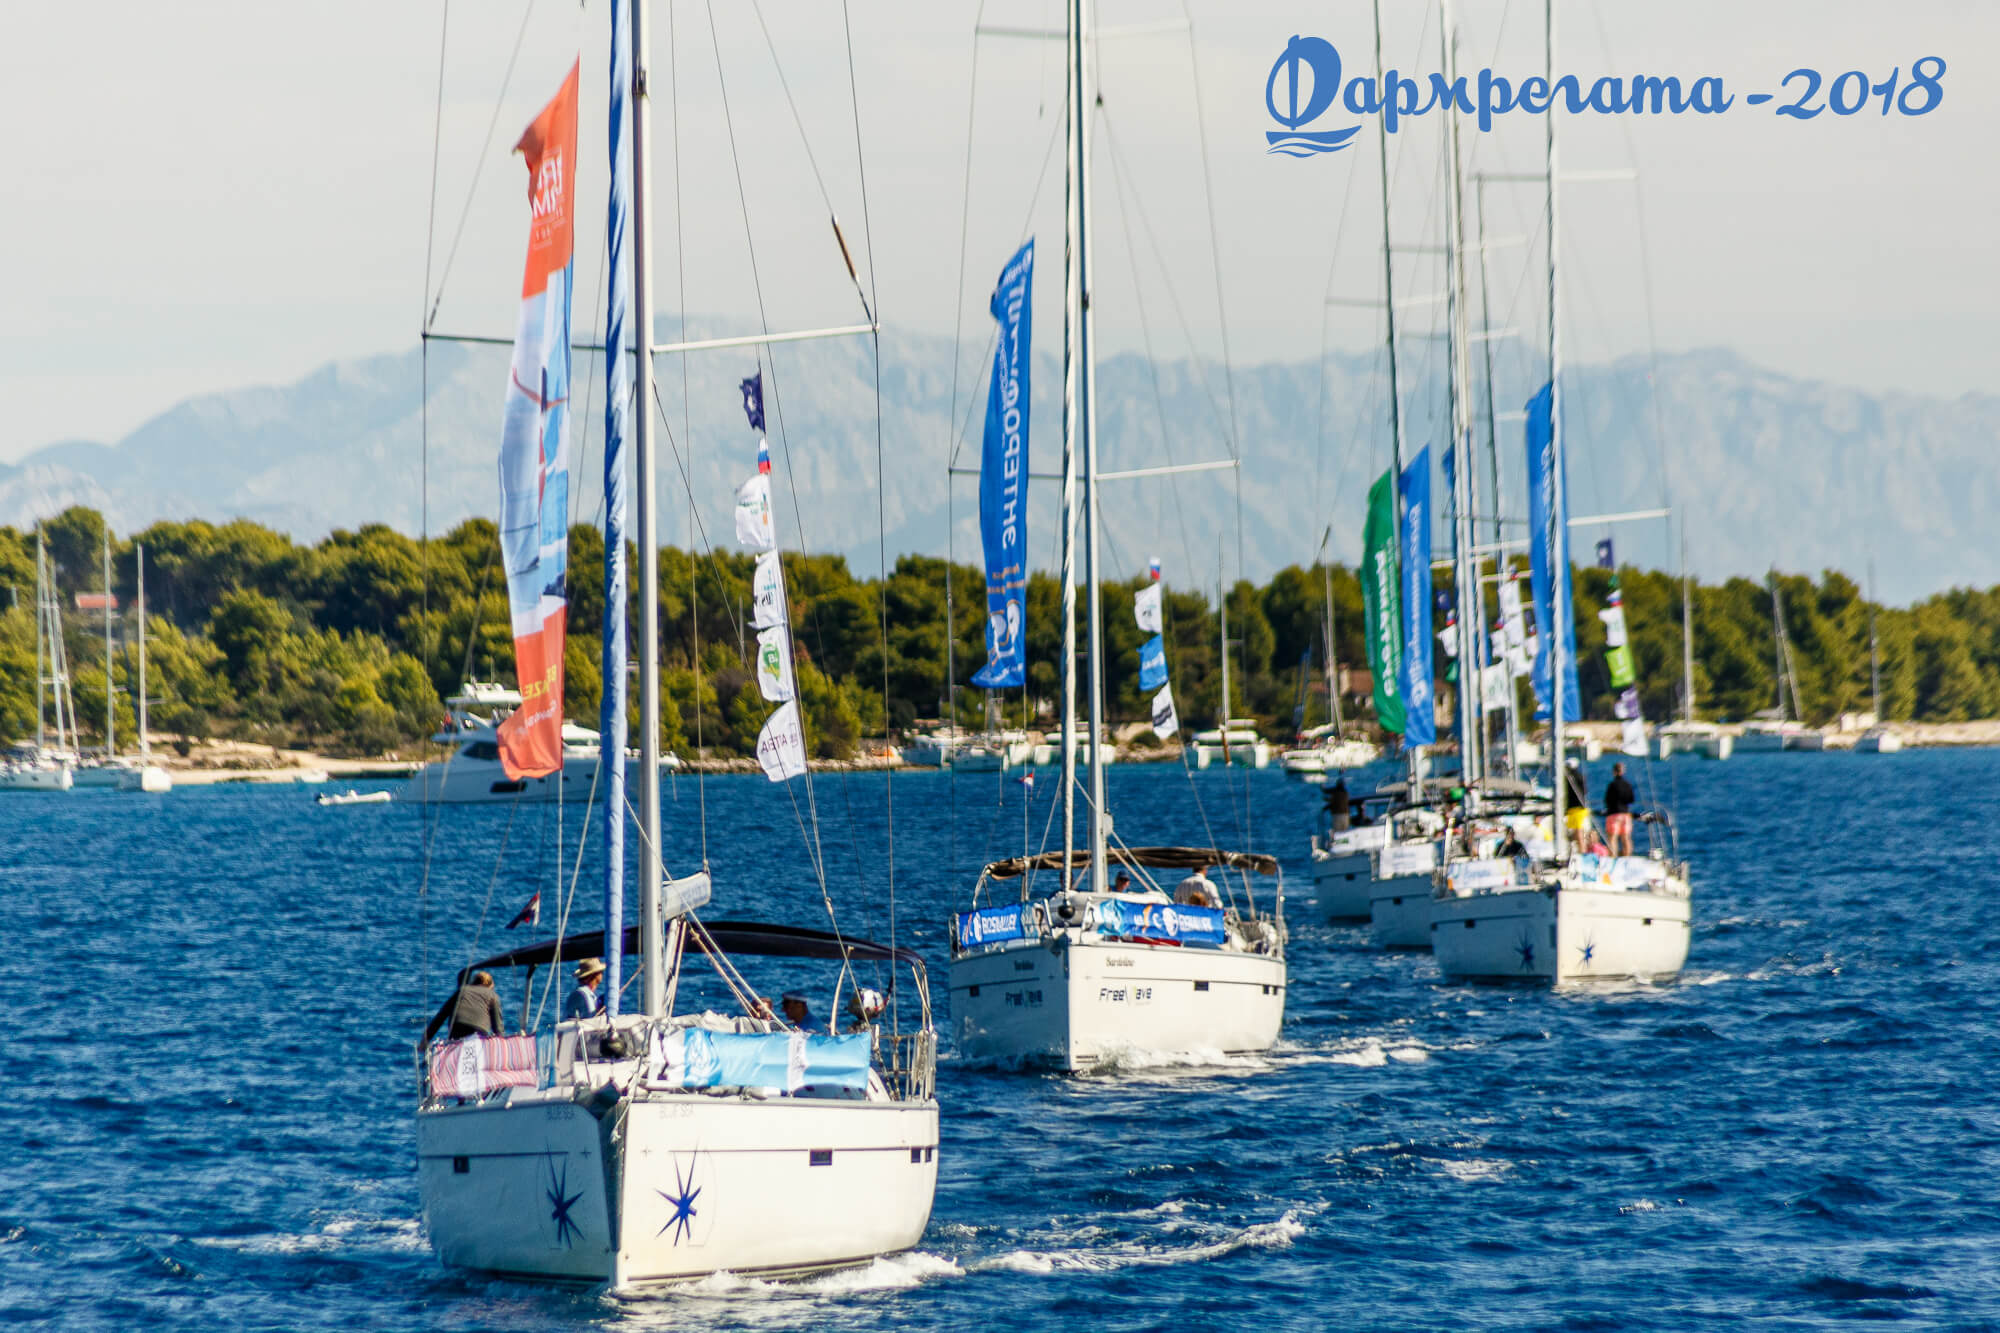 Море, яхты, регата - ДСМ групп Фармрегата 2018 - DSM Group Pharmregata 2018